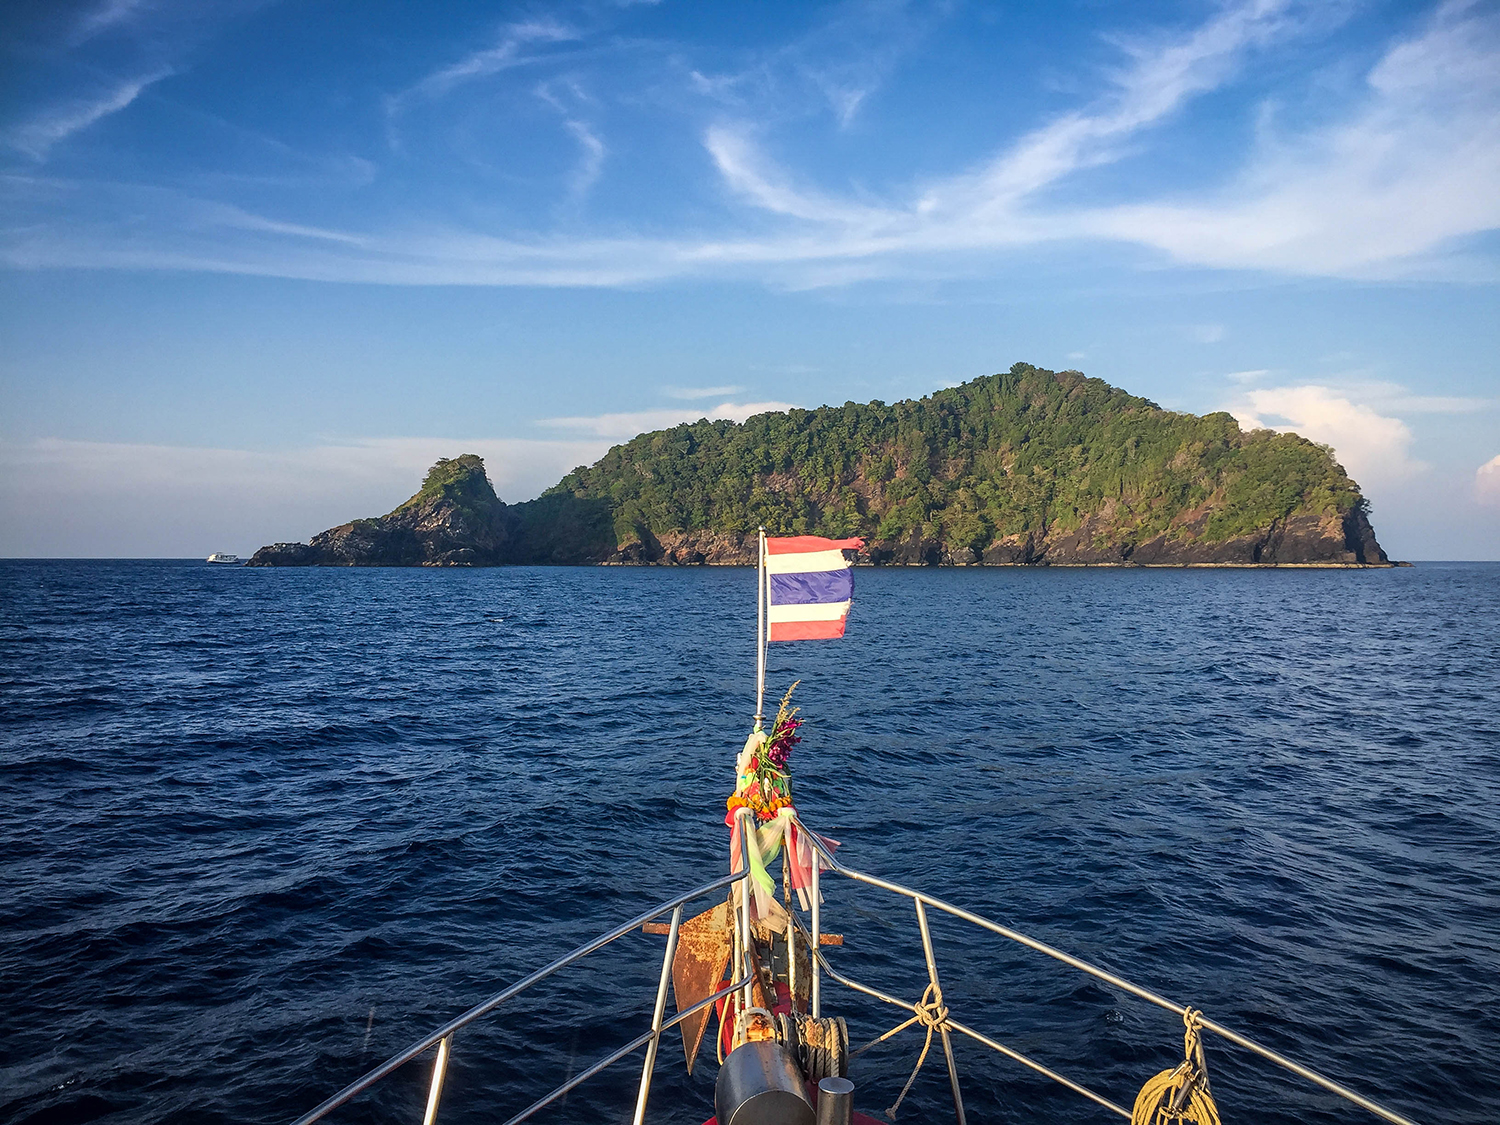 3-Day Similan Islands Liveaboard Scuba Trip with Wicked Diving Thailand